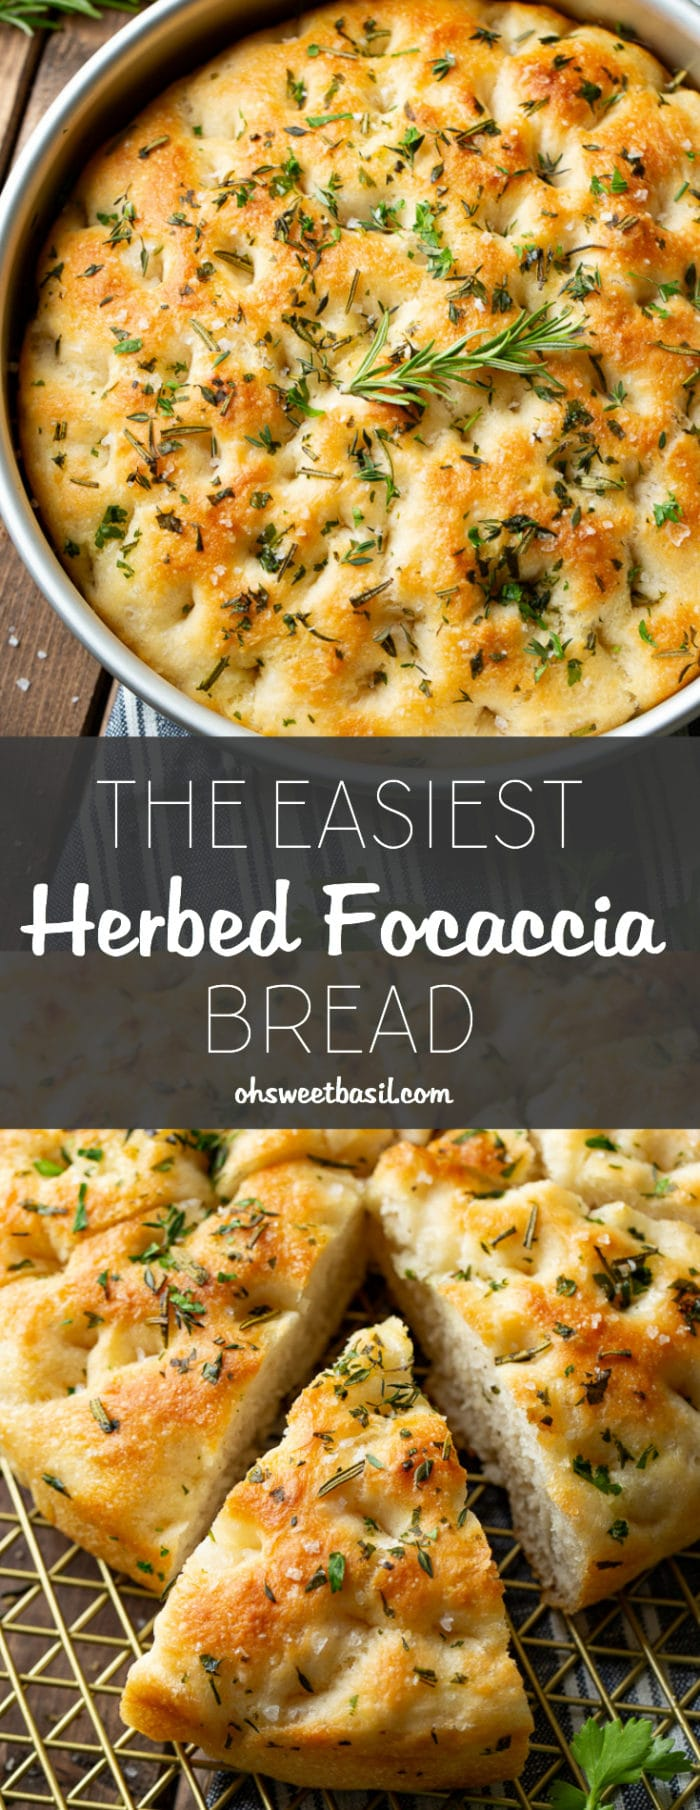 The Easiest Herbed Focaccia Bread Oh Sweet Basil